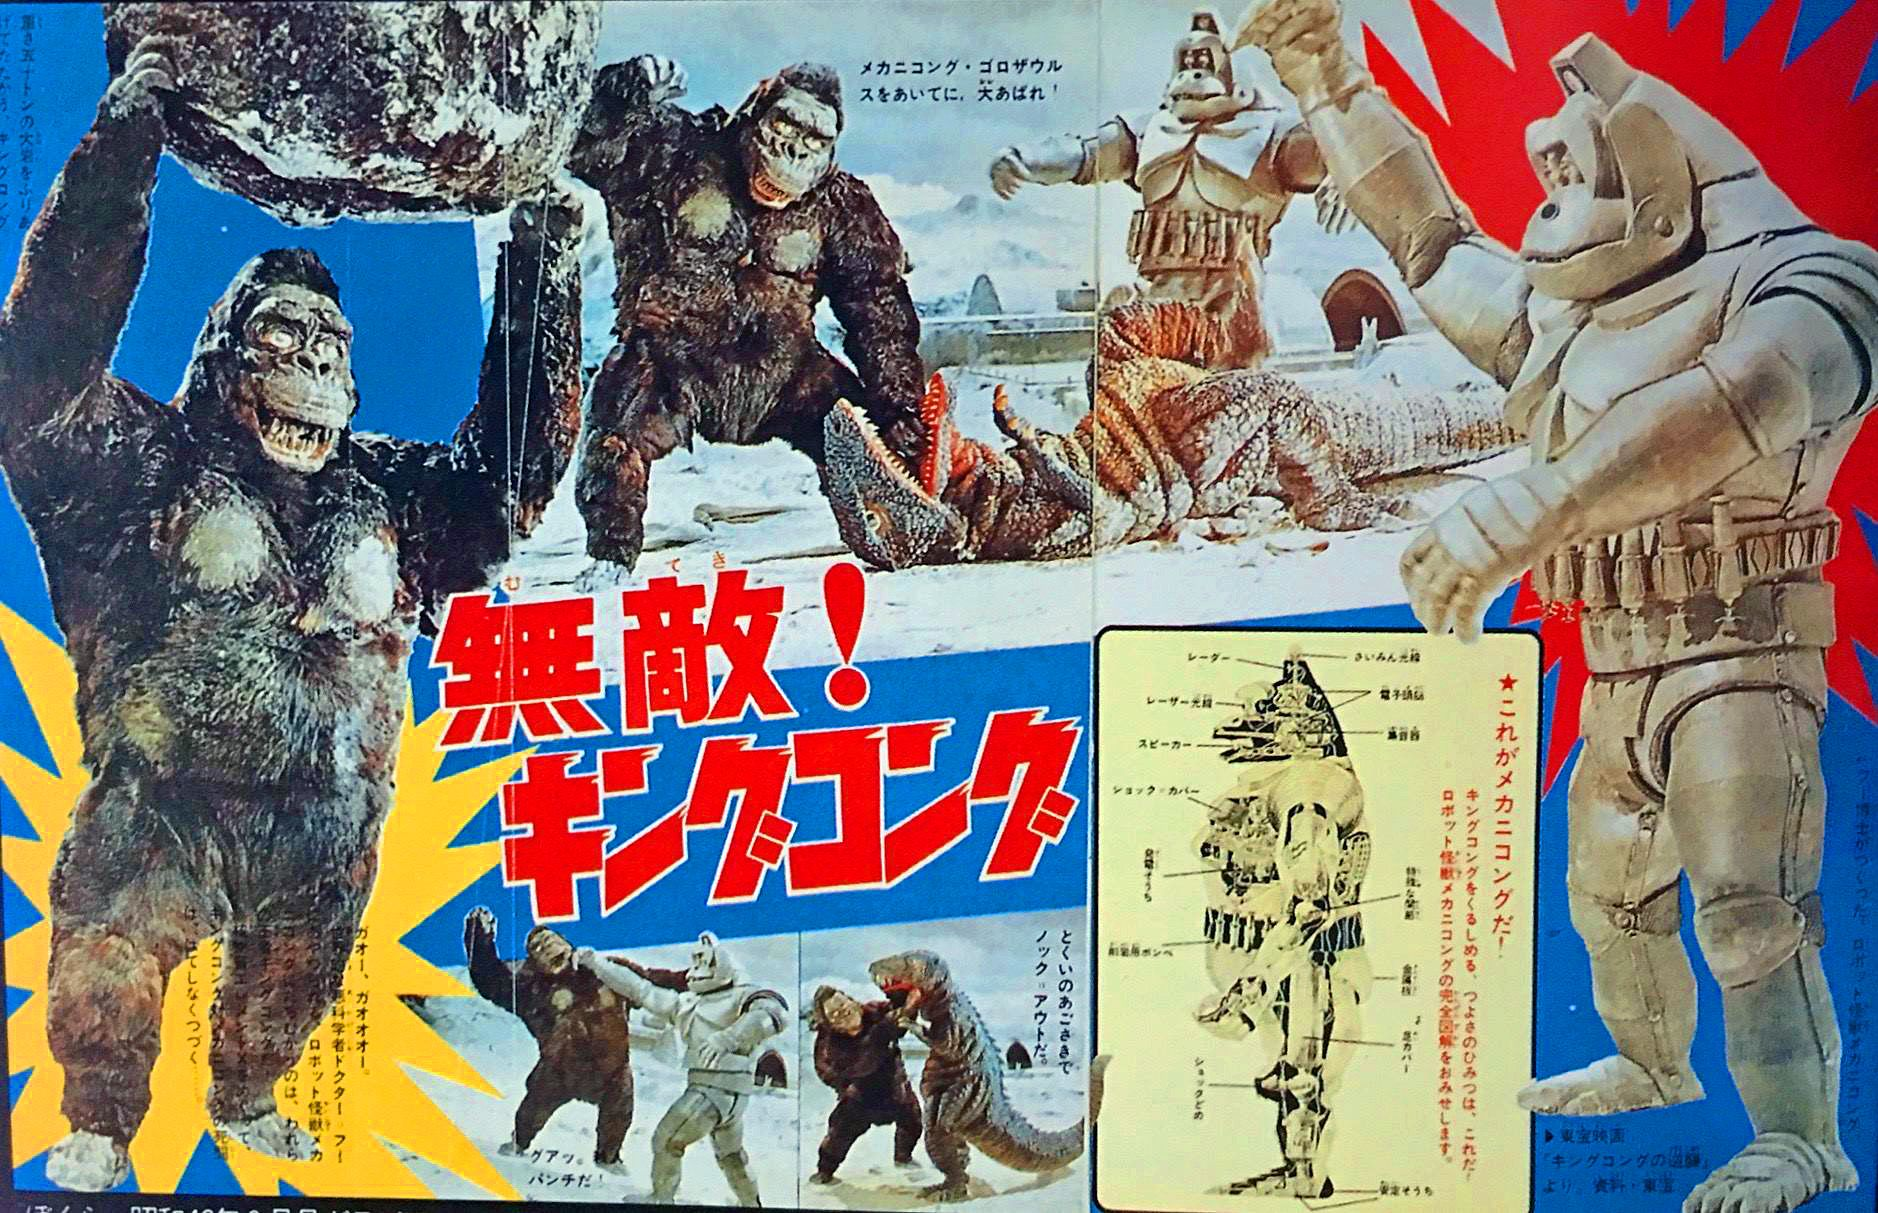 the unbeatable kong and mecxhanikong from king kong escapes 1967 ゴジラ キングコング コレクターズ